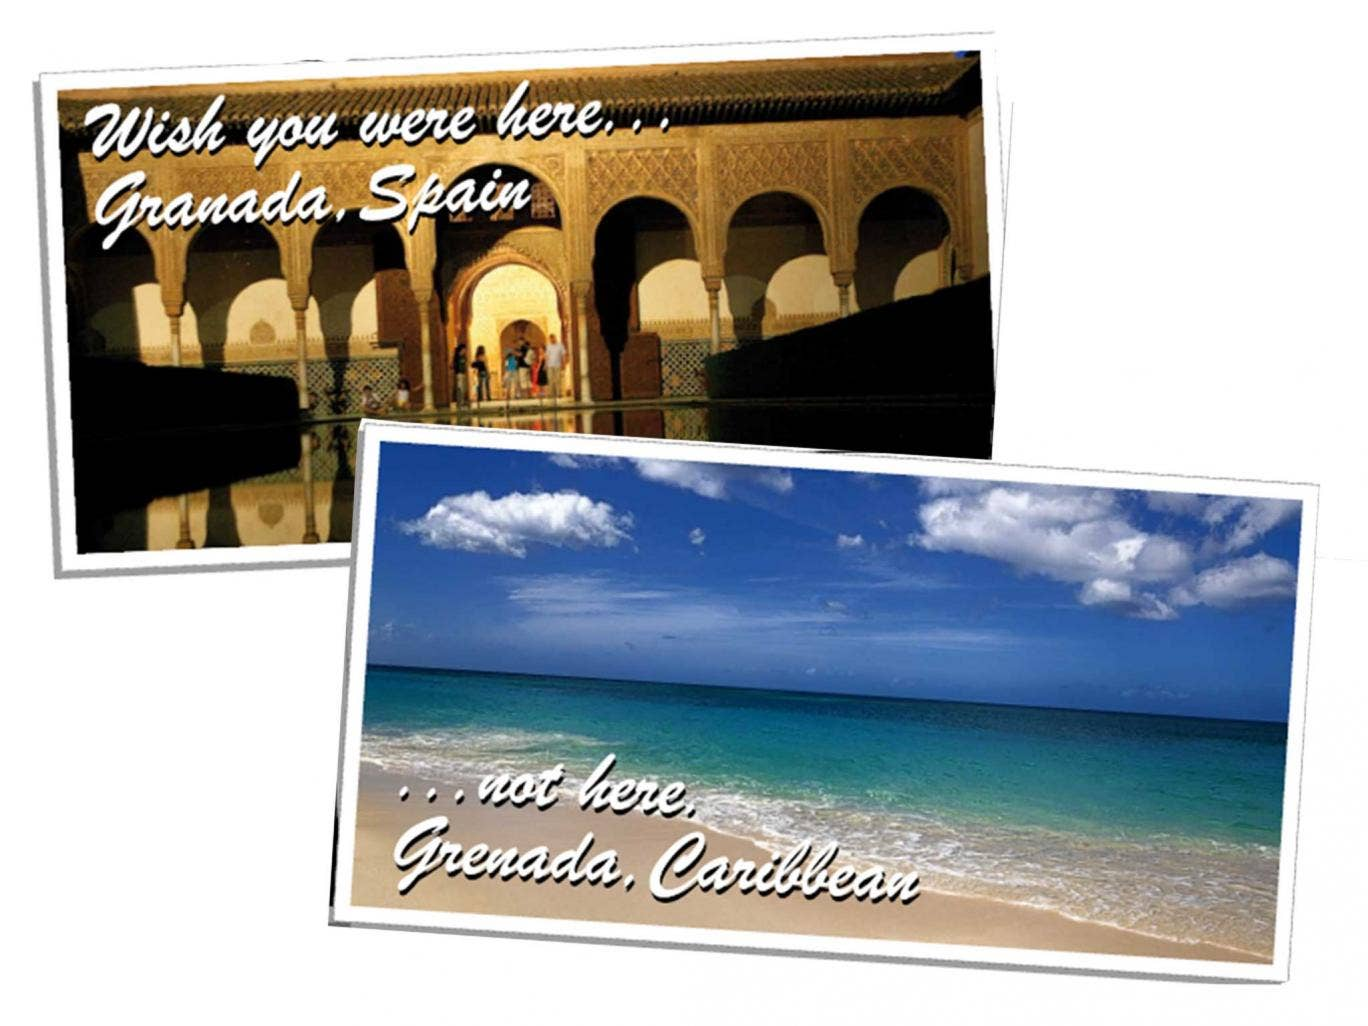 Wish you were here, not there: Mr Gamson flew to Grenada, bottom, not Granada, top